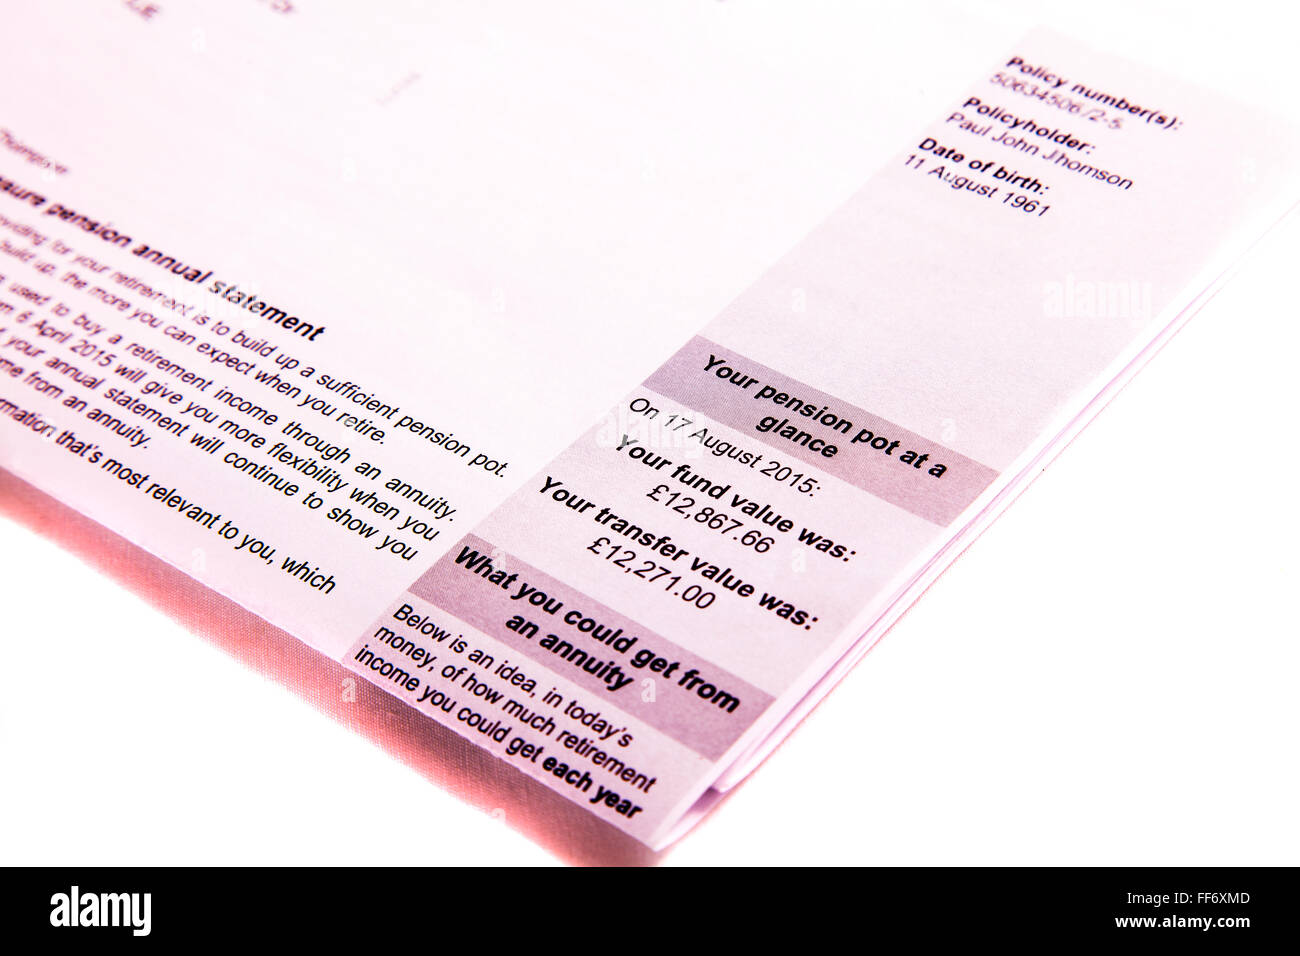 Pension statement pot transfer value fund letter amount cutout cut out white background isolated - Stock Image